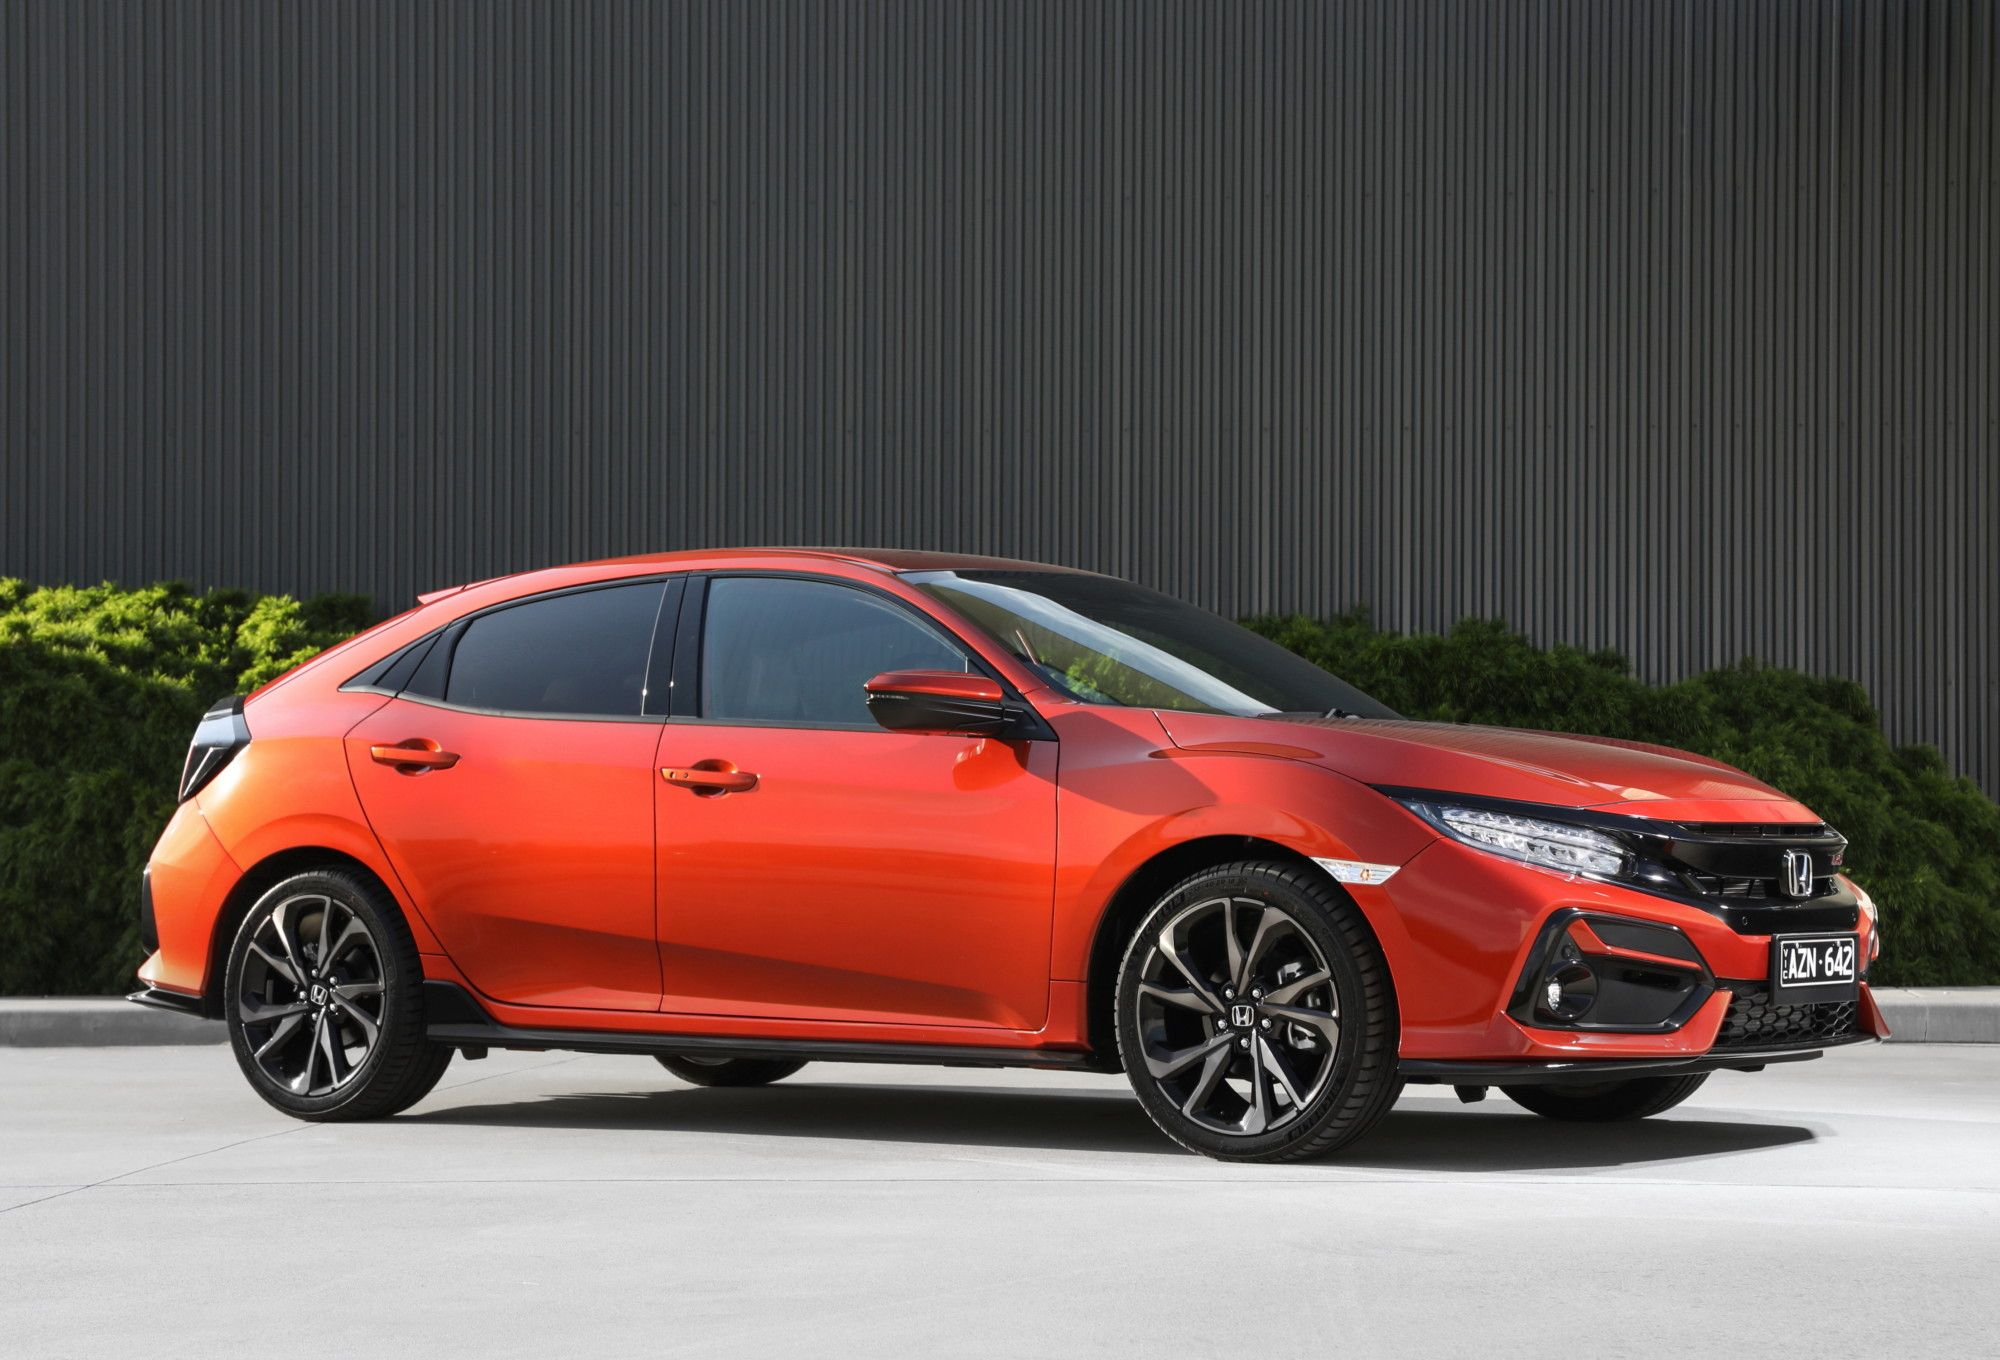 The Redesigned 2020 Civic Hatch Gets Fresh Styling Upgraded Interior And Now The Sporty Rs Grade Is Back In The Line Up I Civic Honda Civic Hatch New Honda